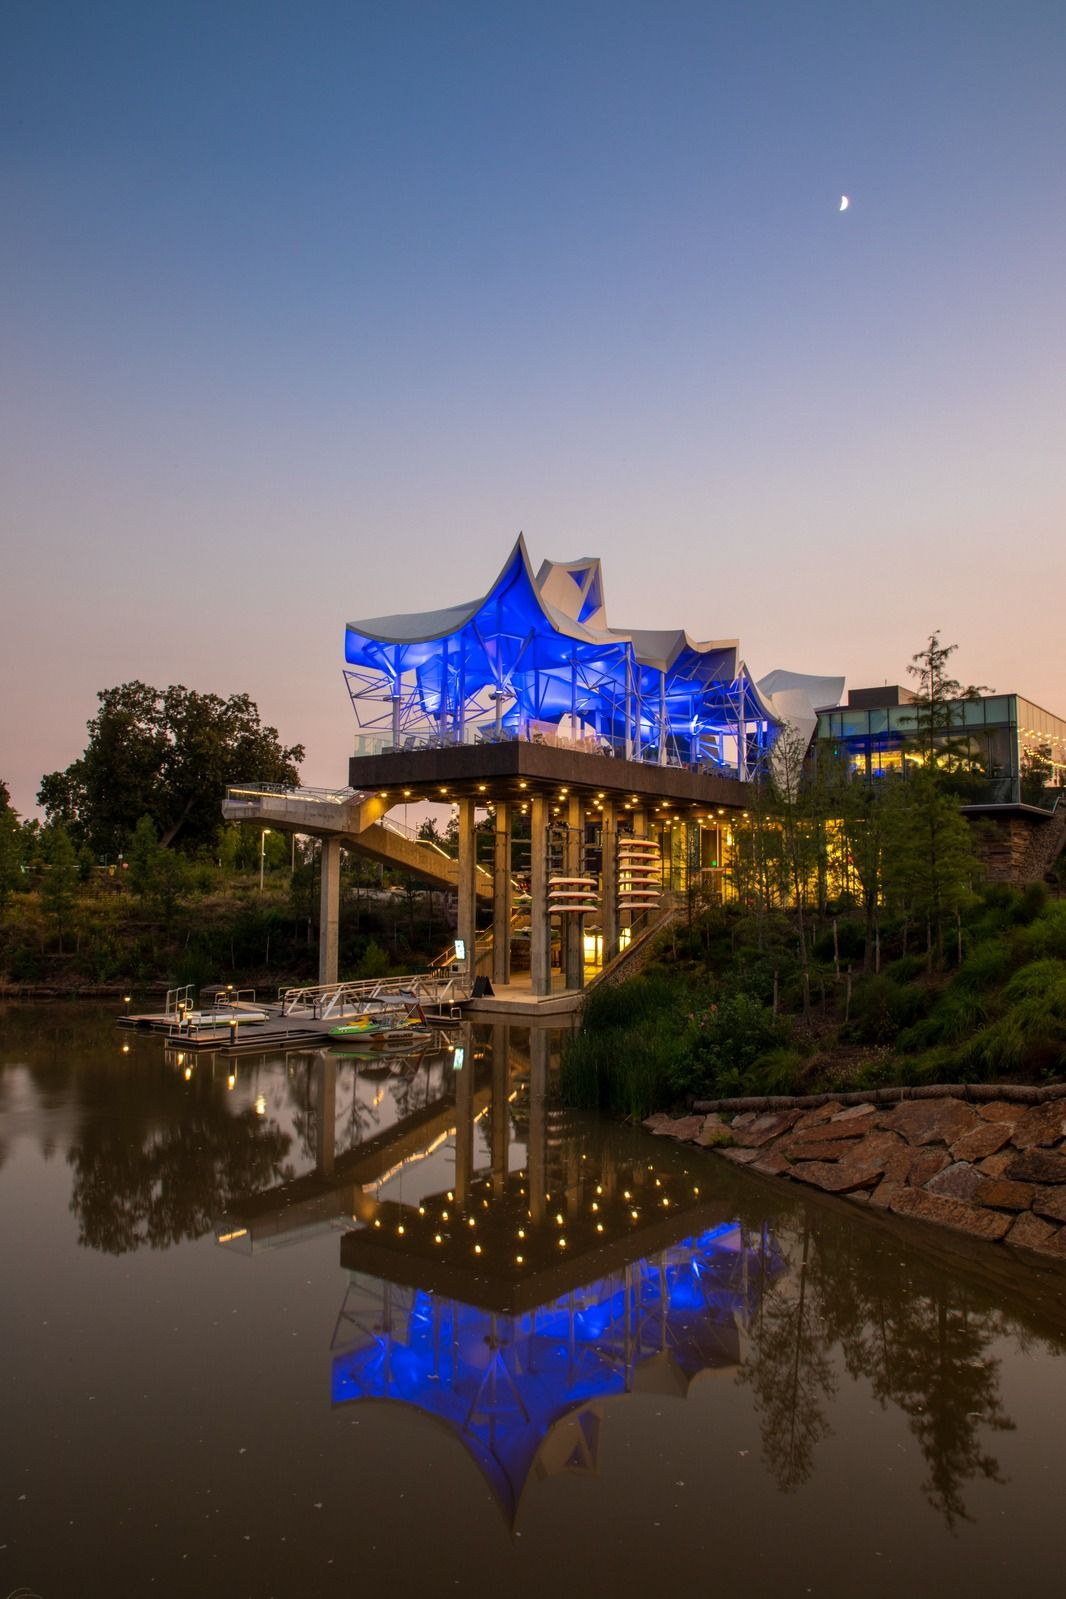 This awardwinning park in tulsa offers 70 acres of family